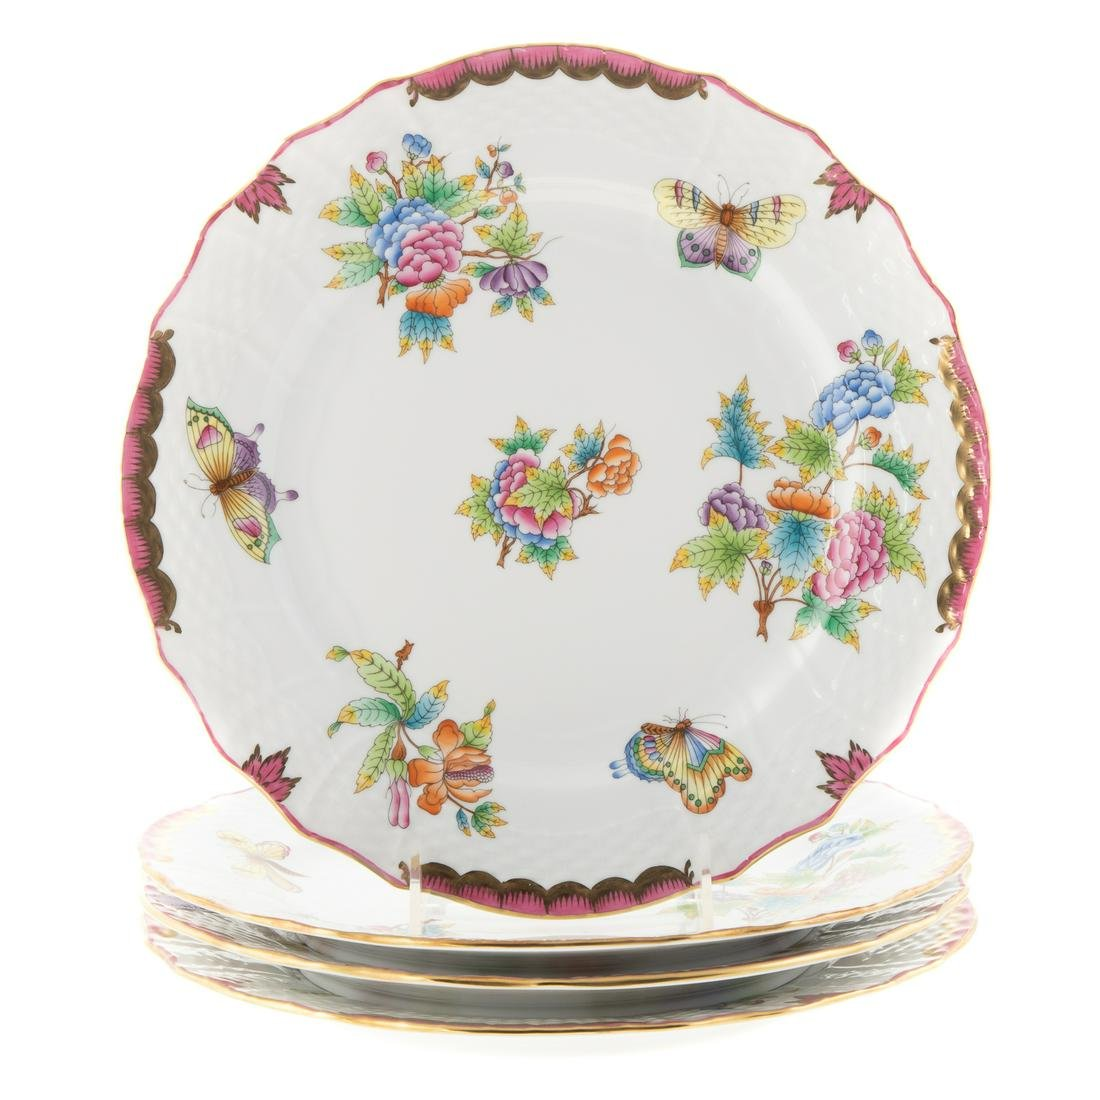 Four Herend Queen Victoria Dinner Plates